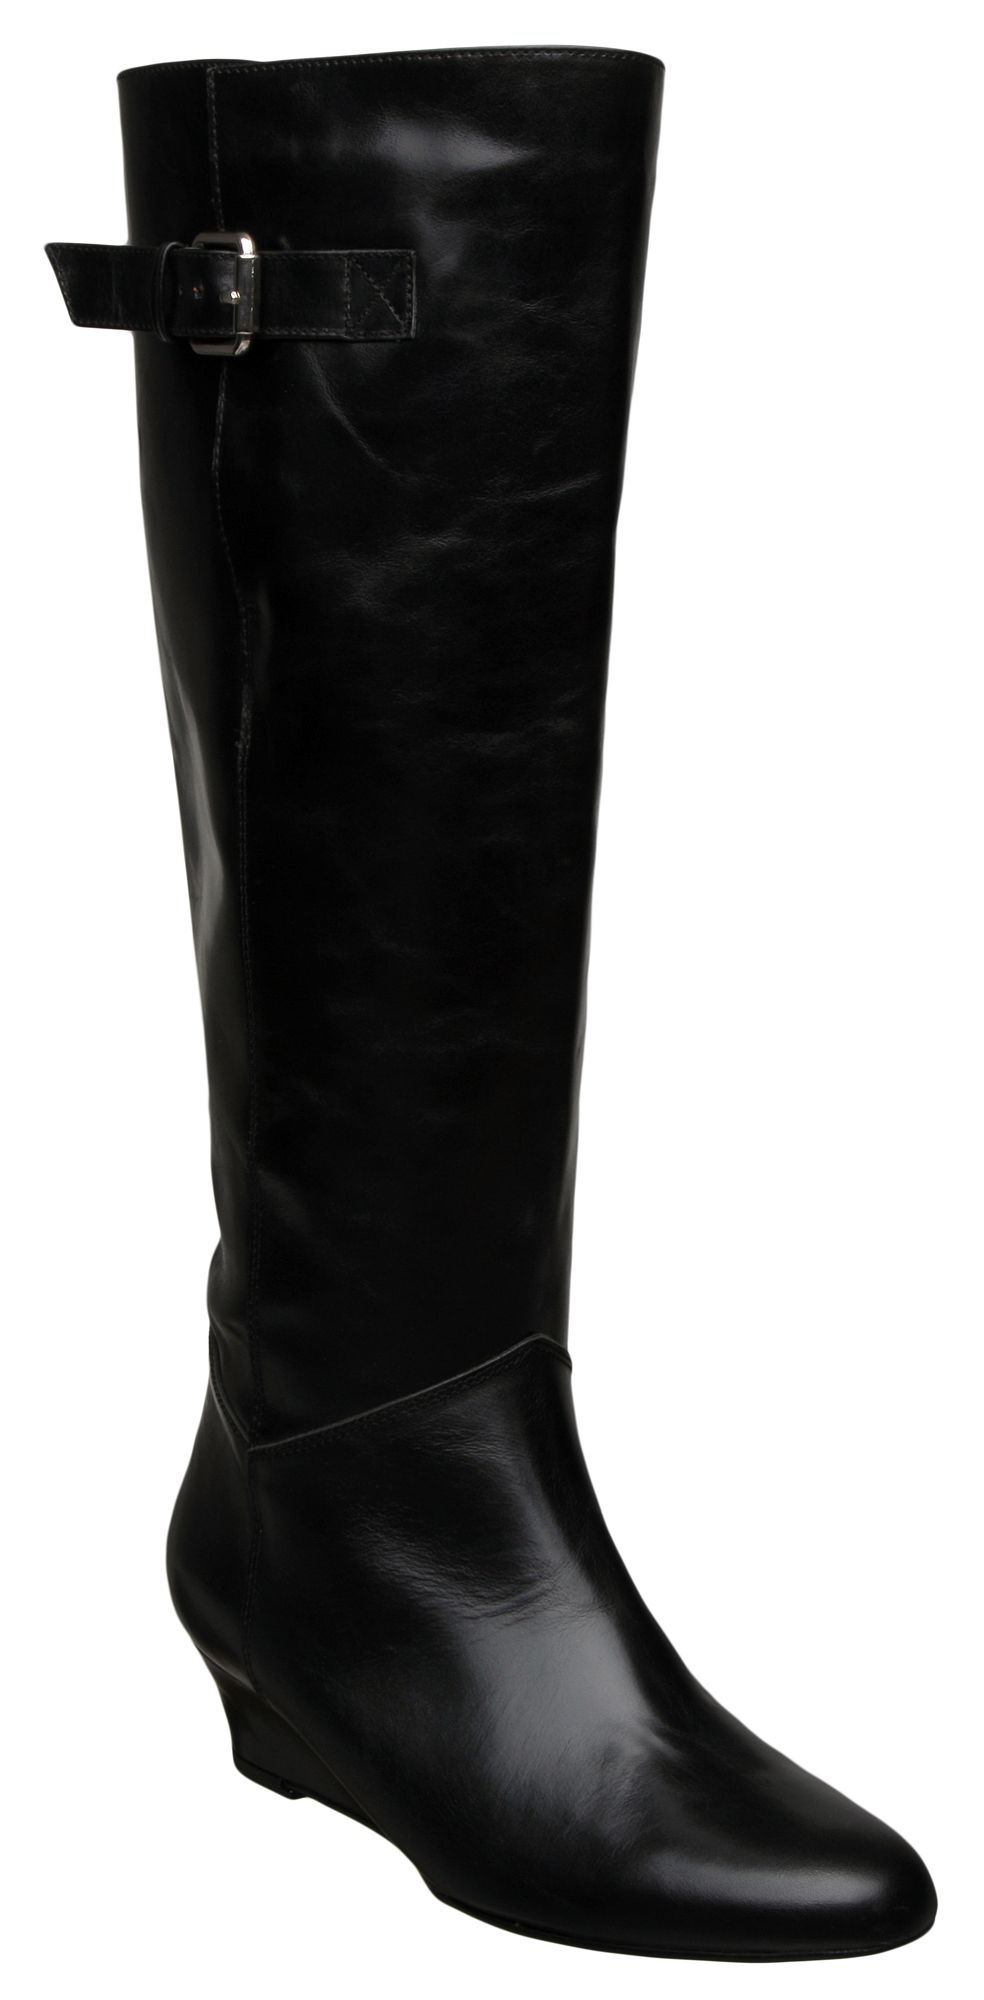 dune preach d low wedge high boots in black lyst